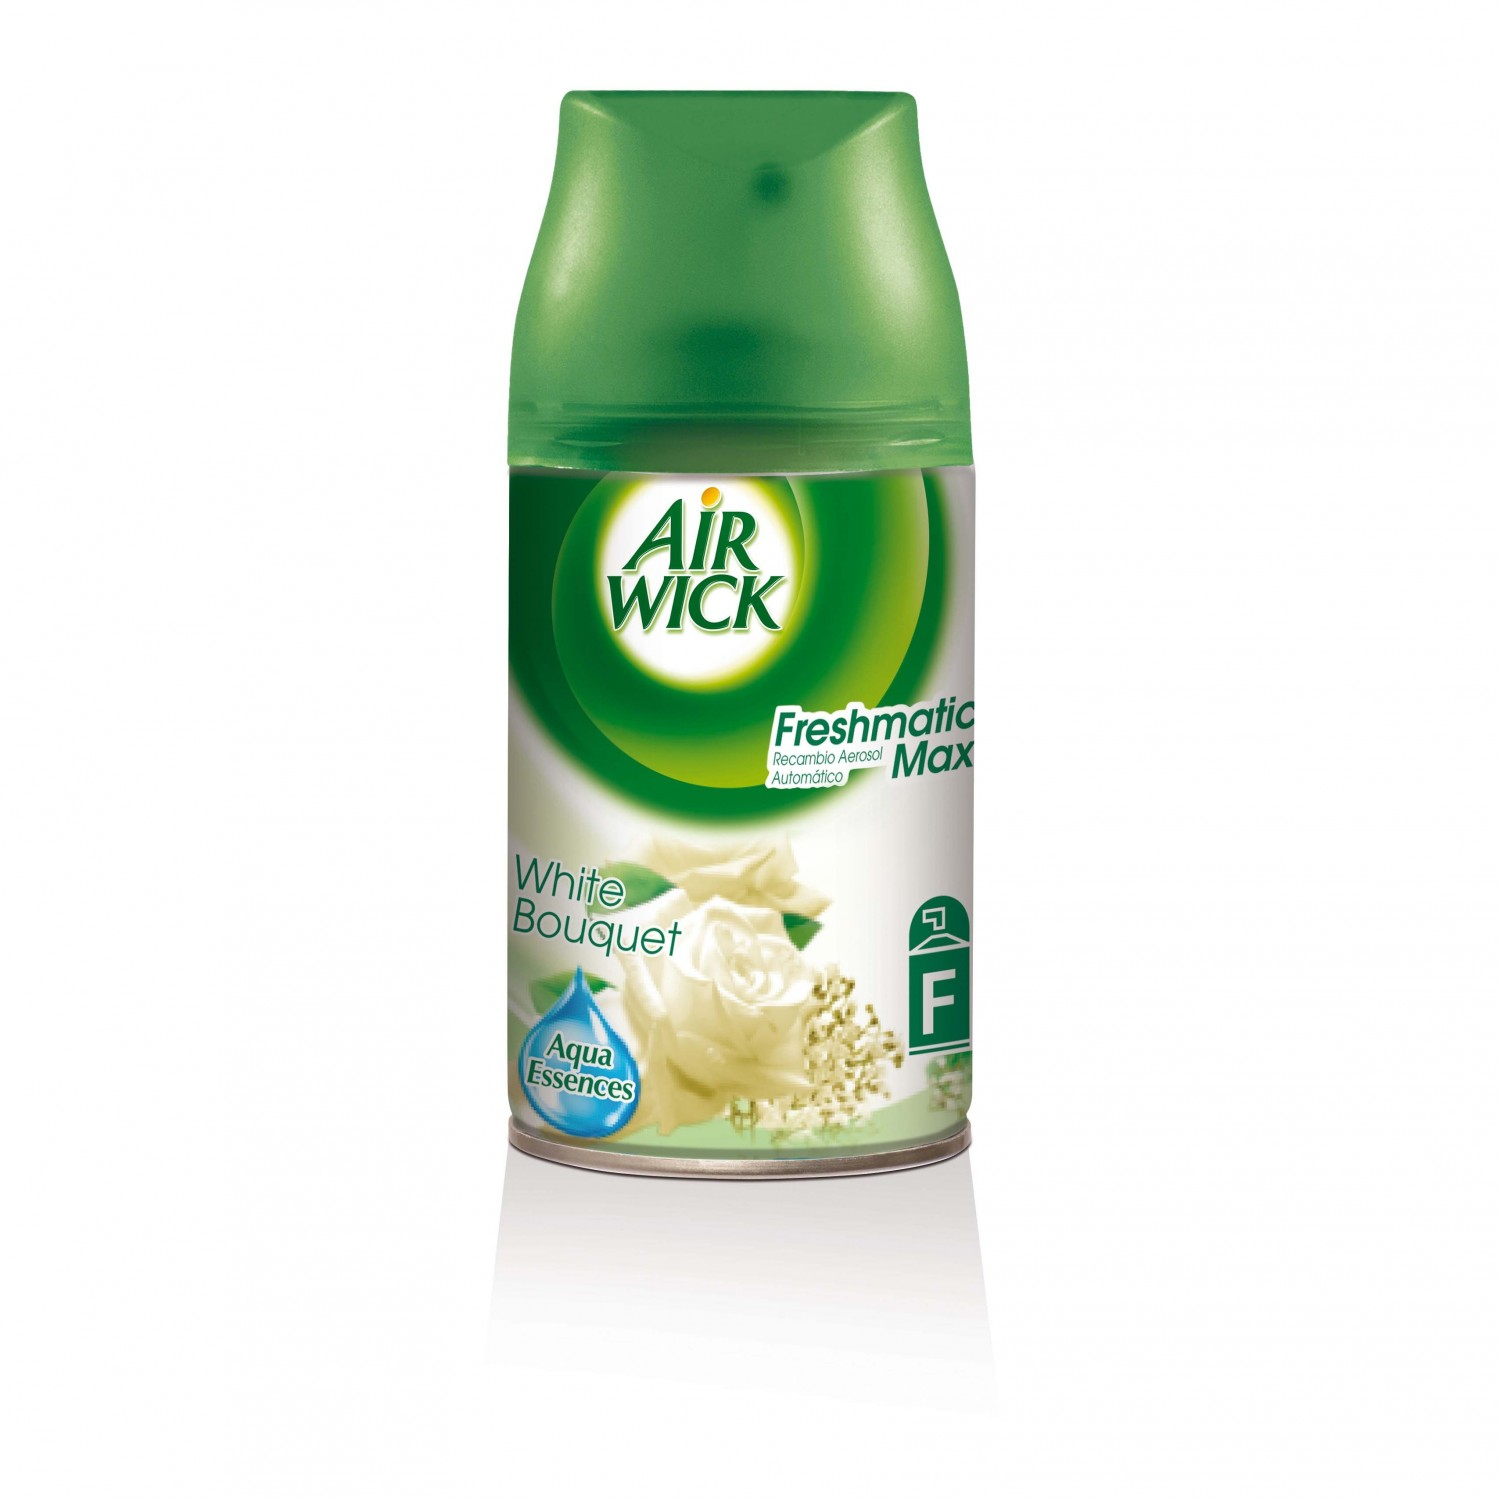 Air Wick fresh matic max ambientador automatico white bouquet recambio